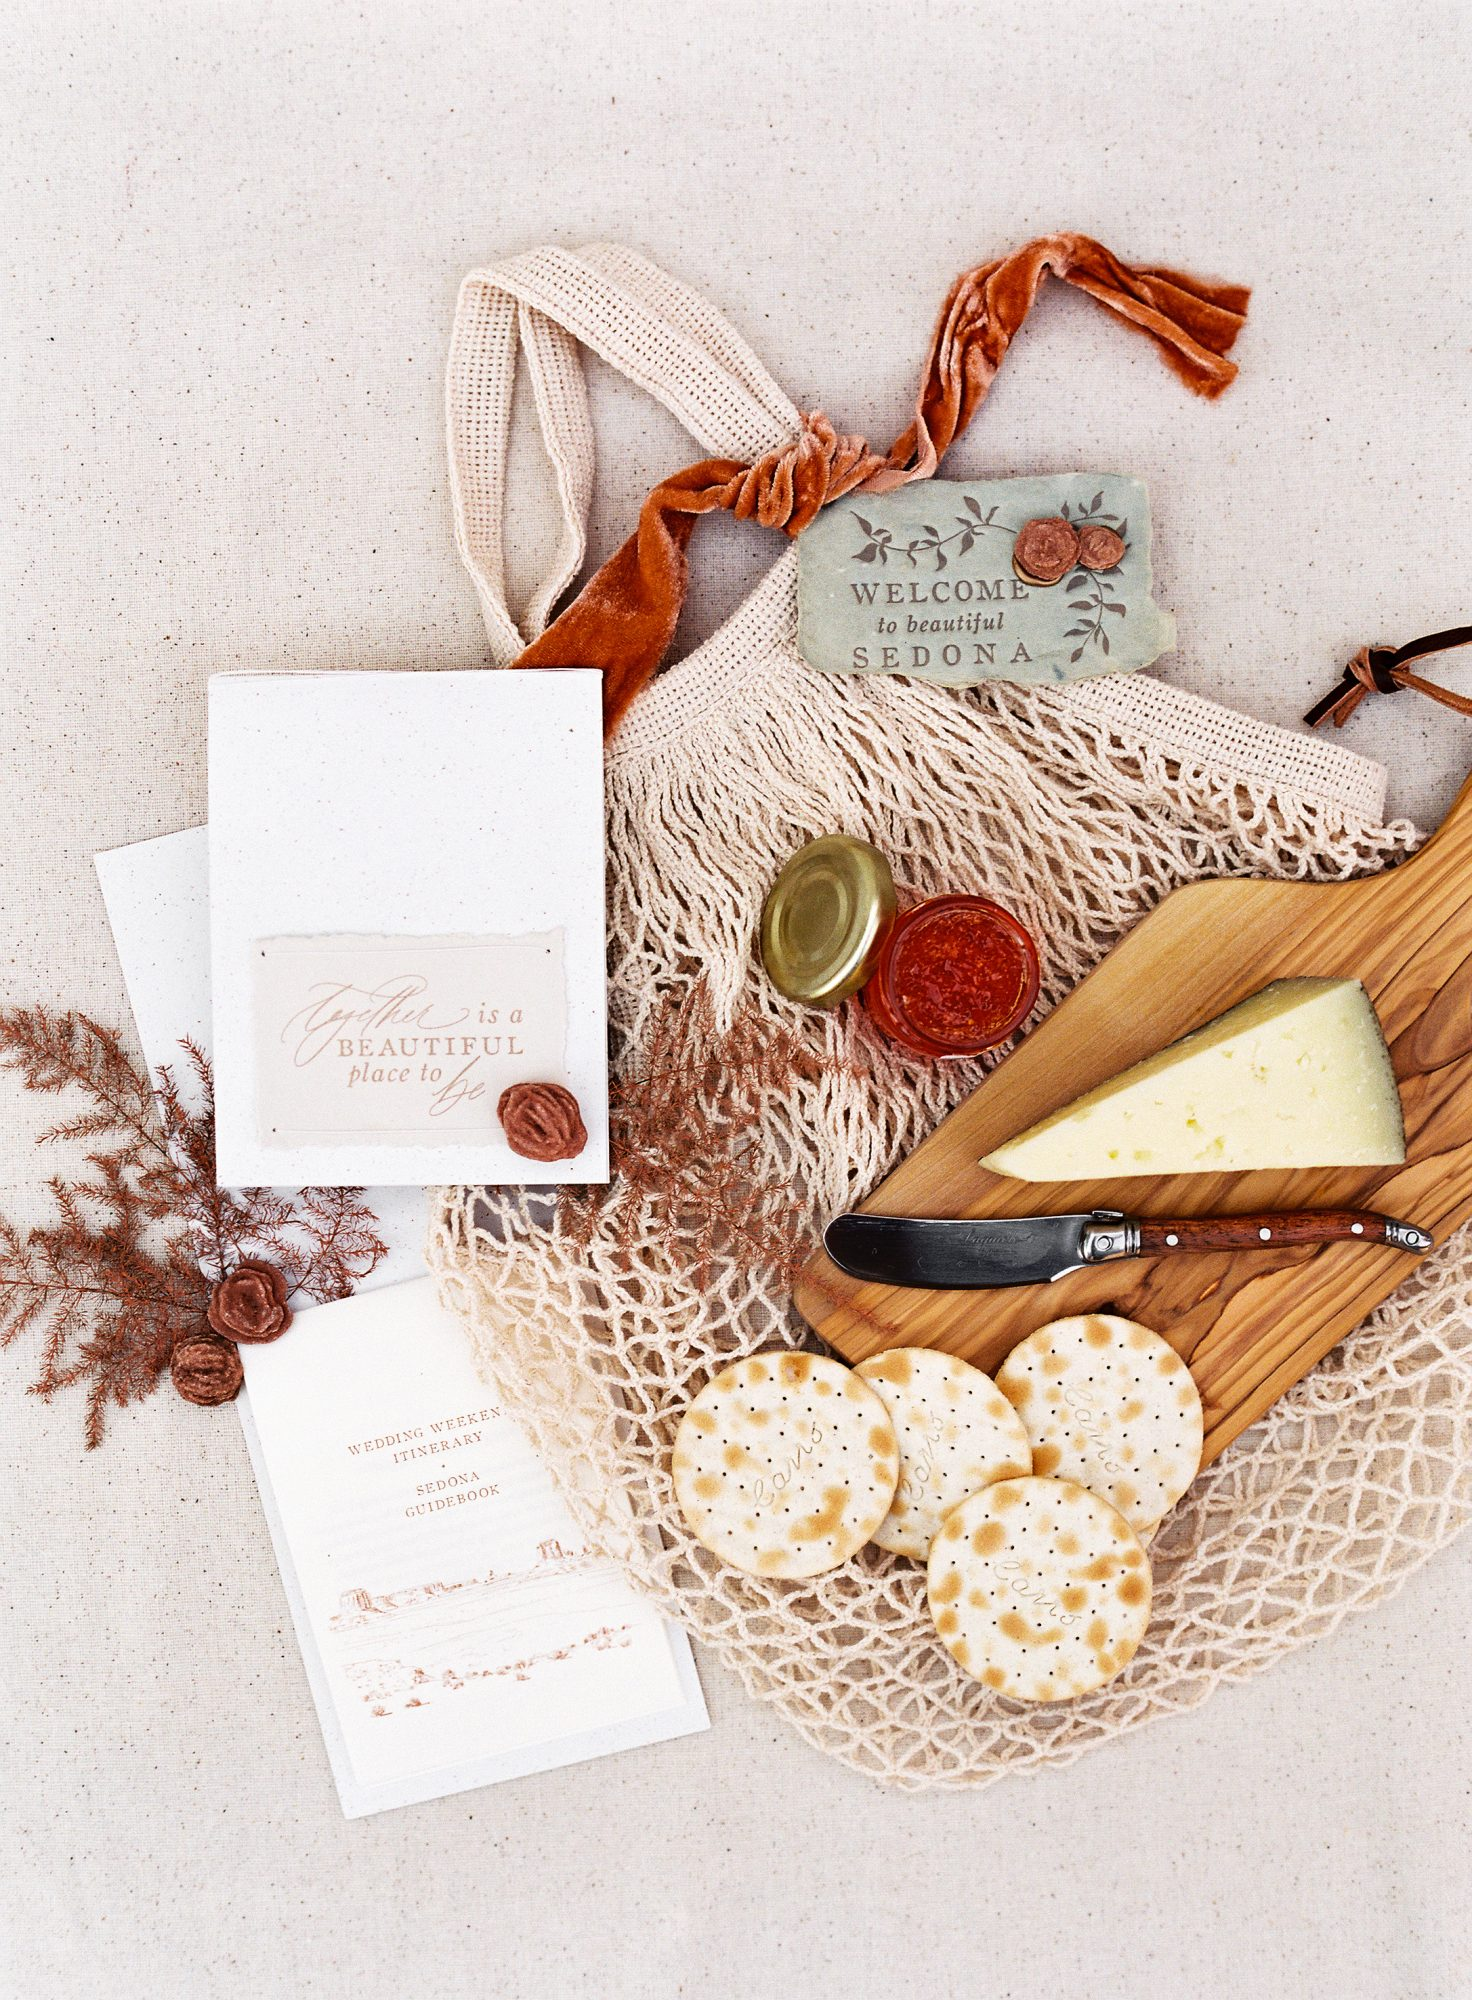 stefanie terrel wedding welcome bag